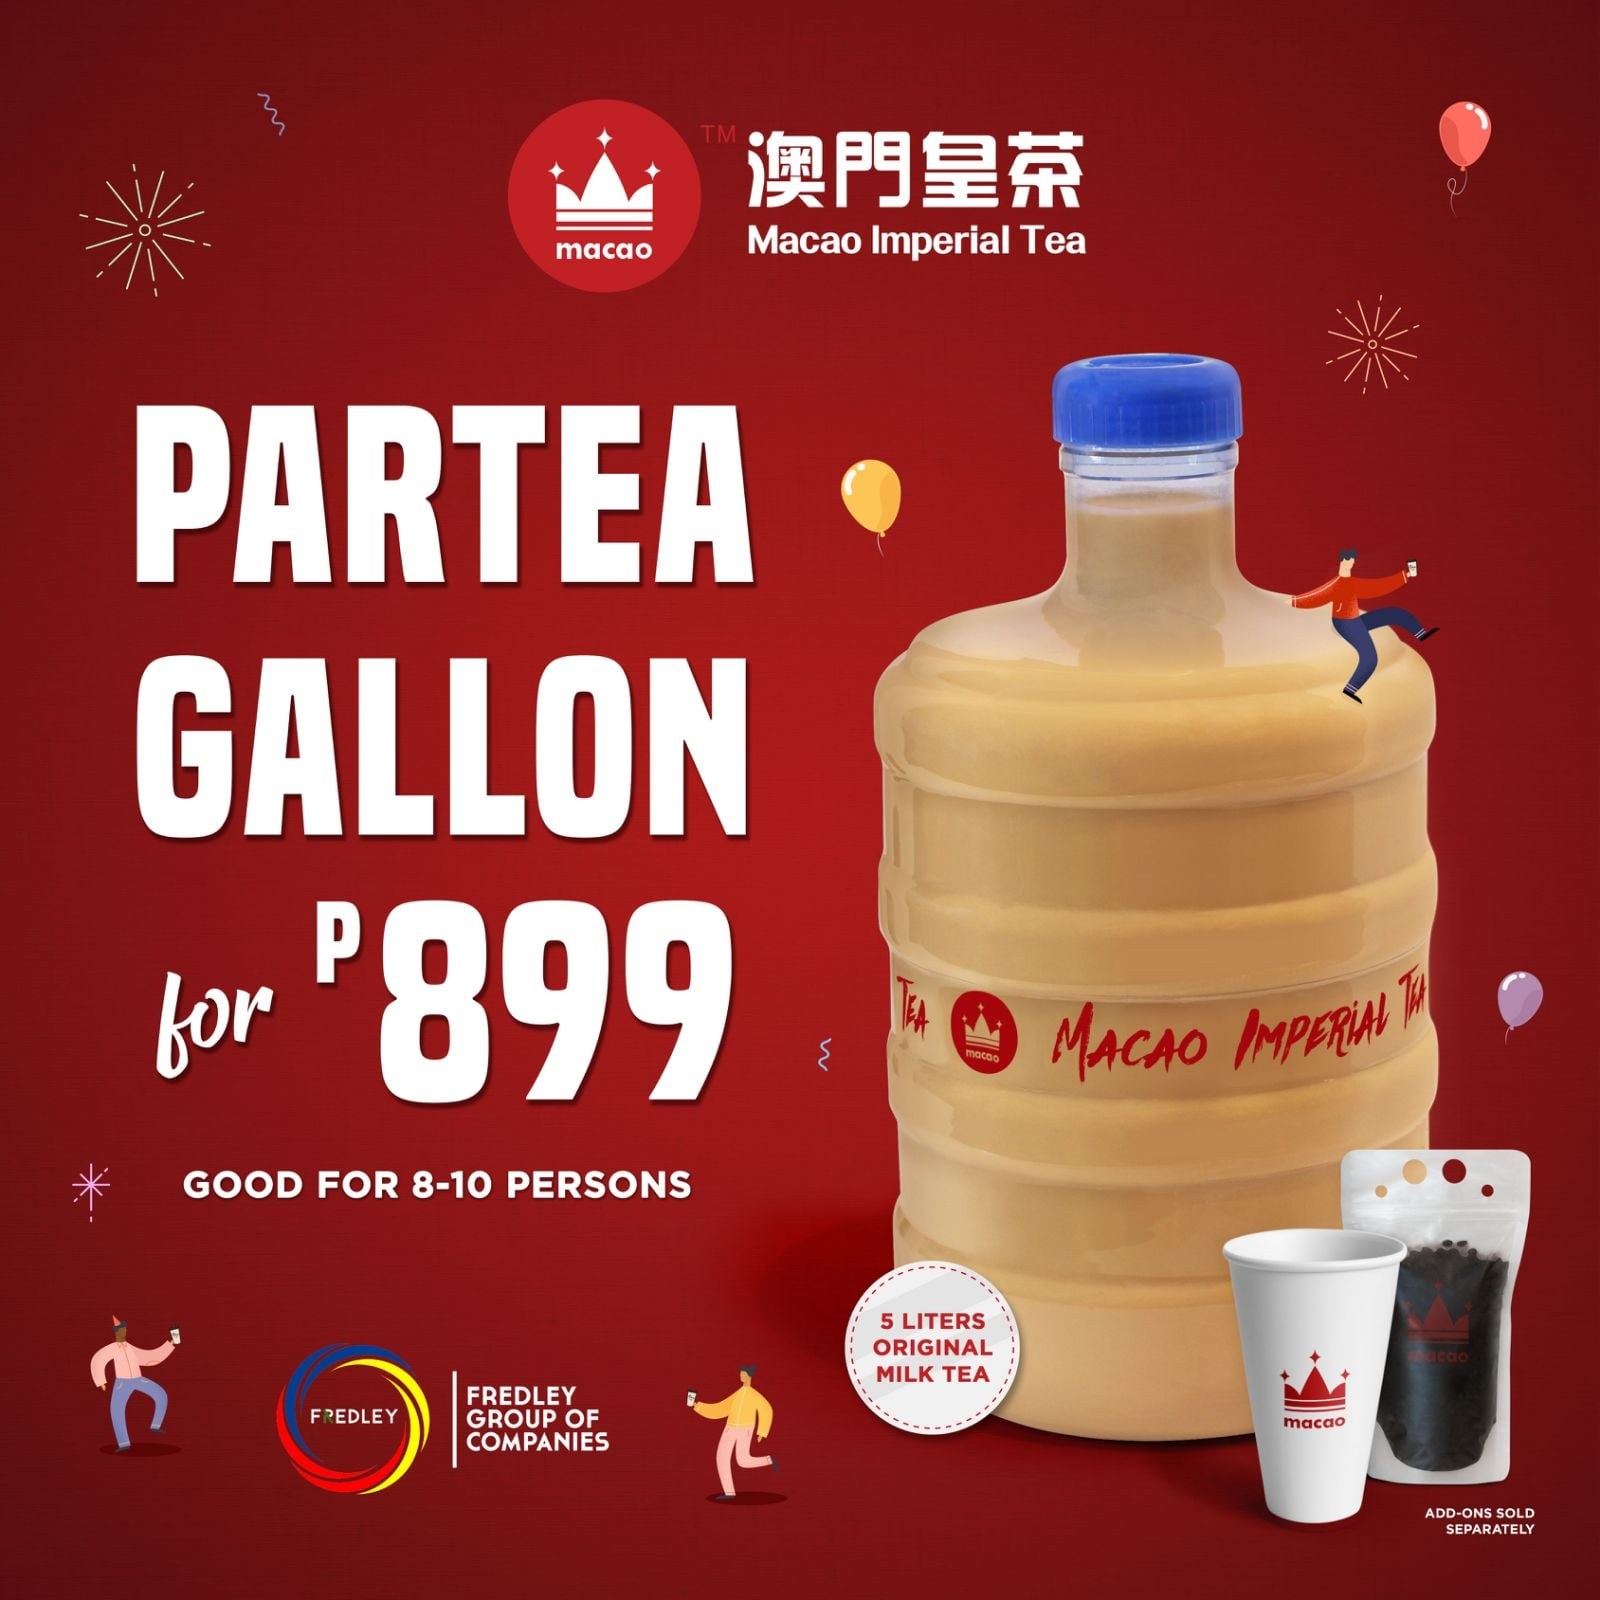 Macao Imperial Tea Party Gallon